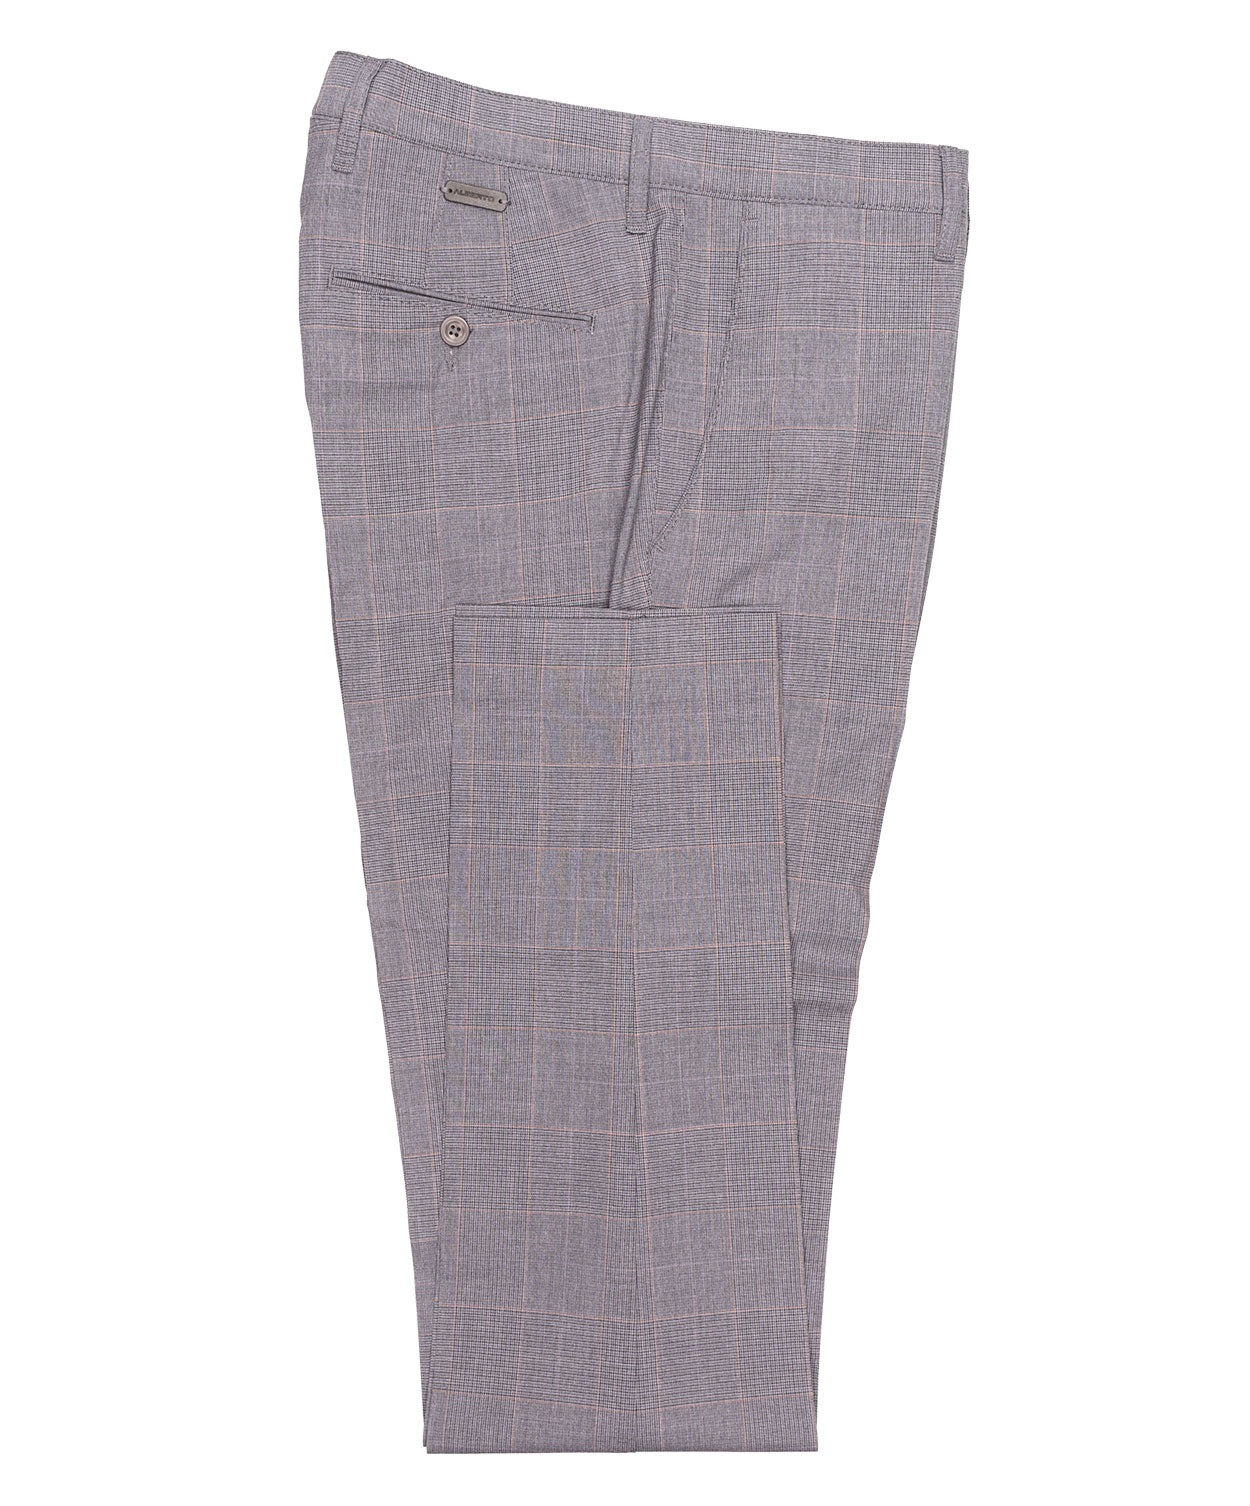 Rob Dark Grey Glen Check Dress Pant